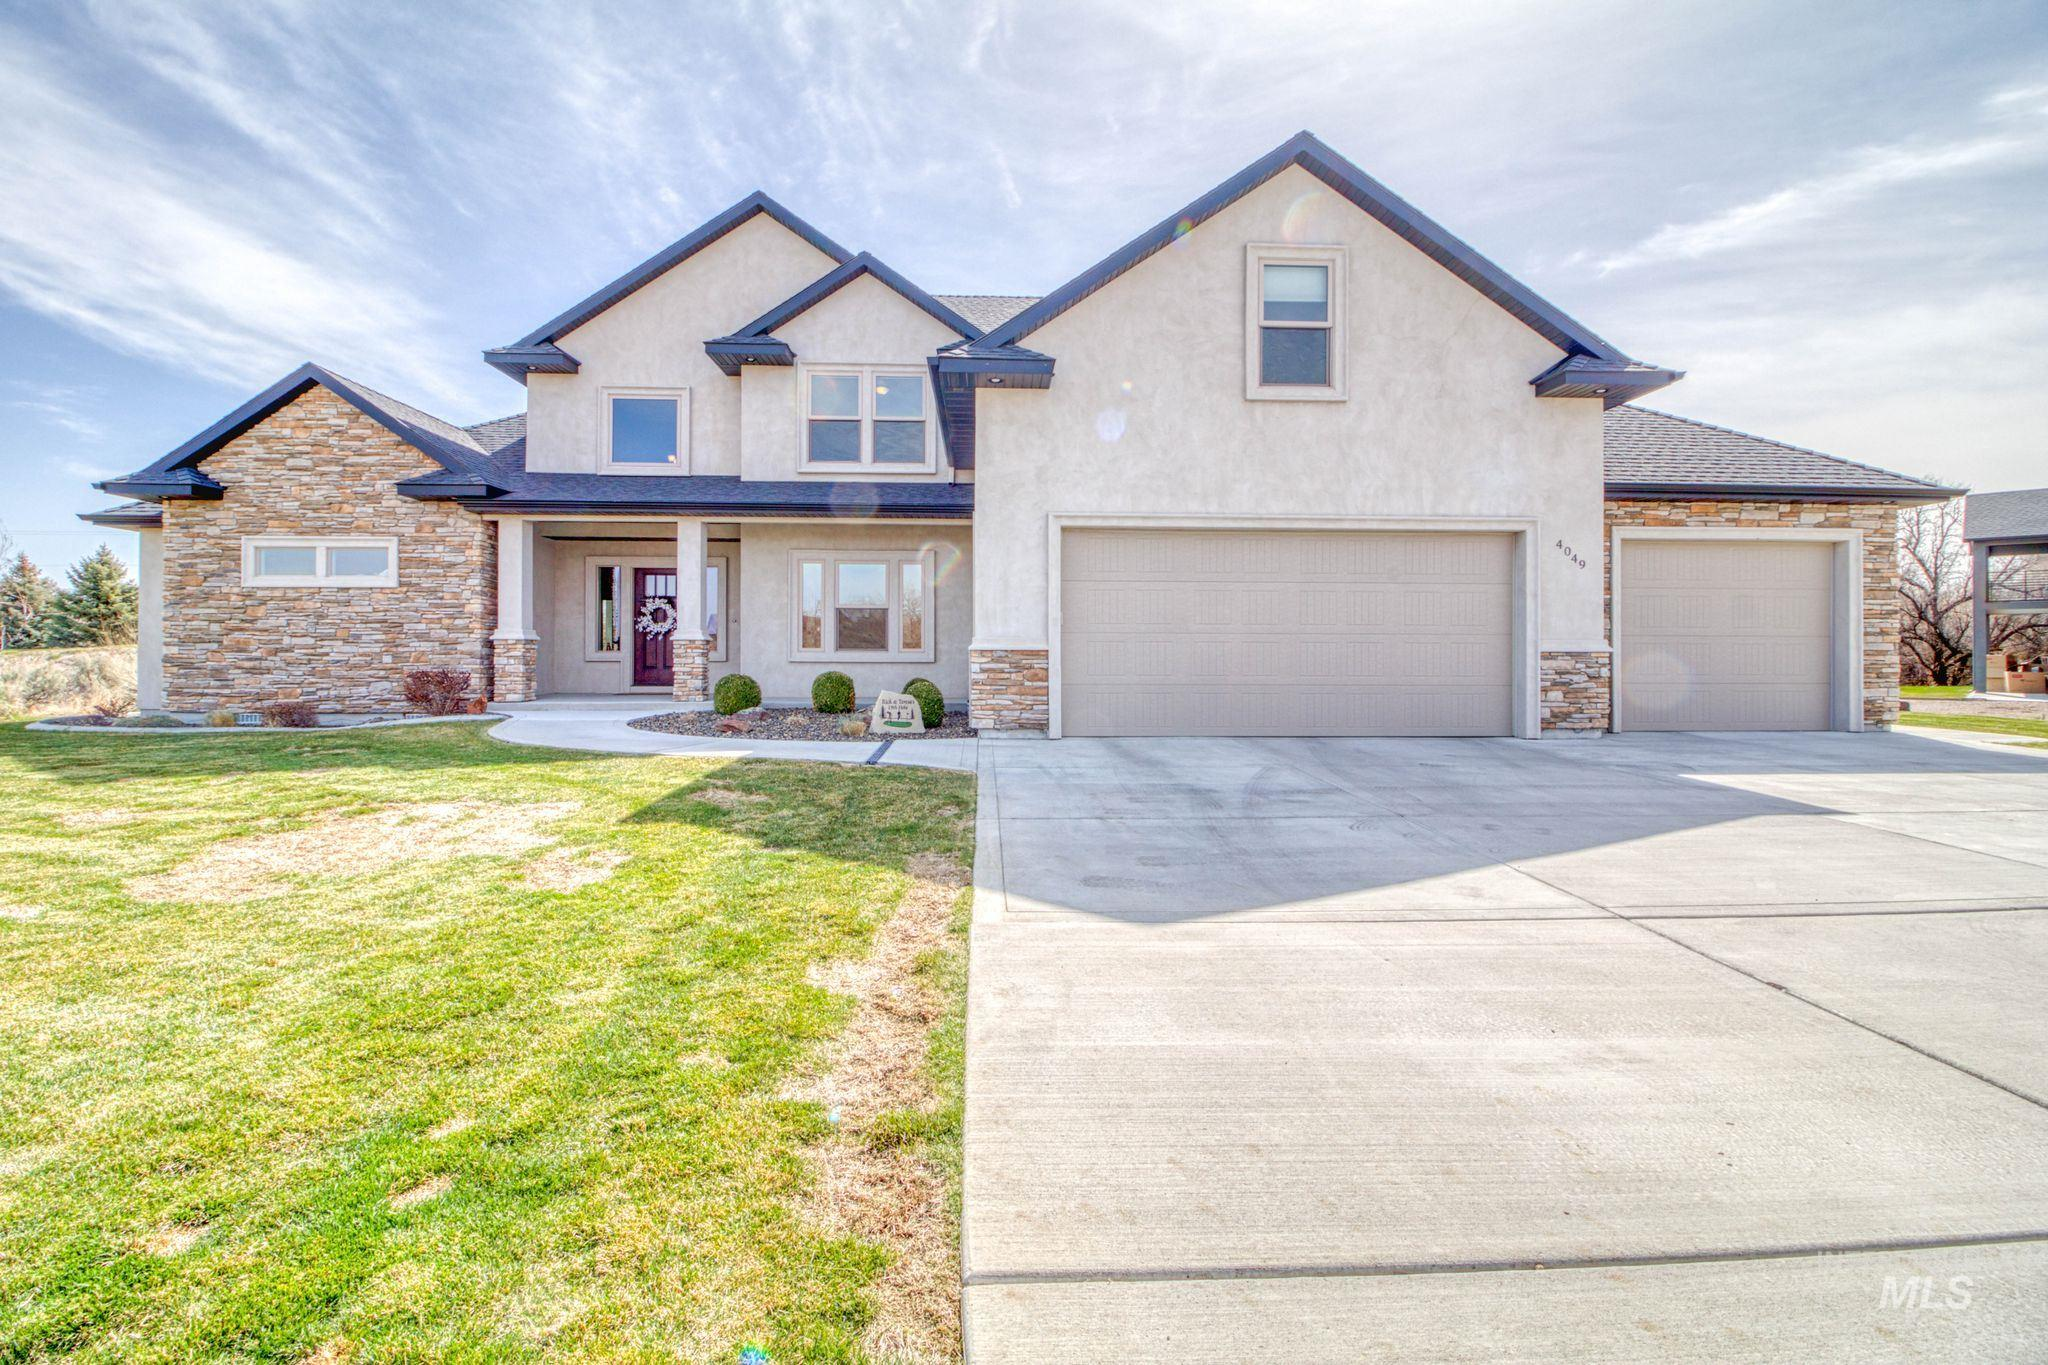 4049 Quail Ridge Drive Property Photo - Kimberly, ID real estate listing